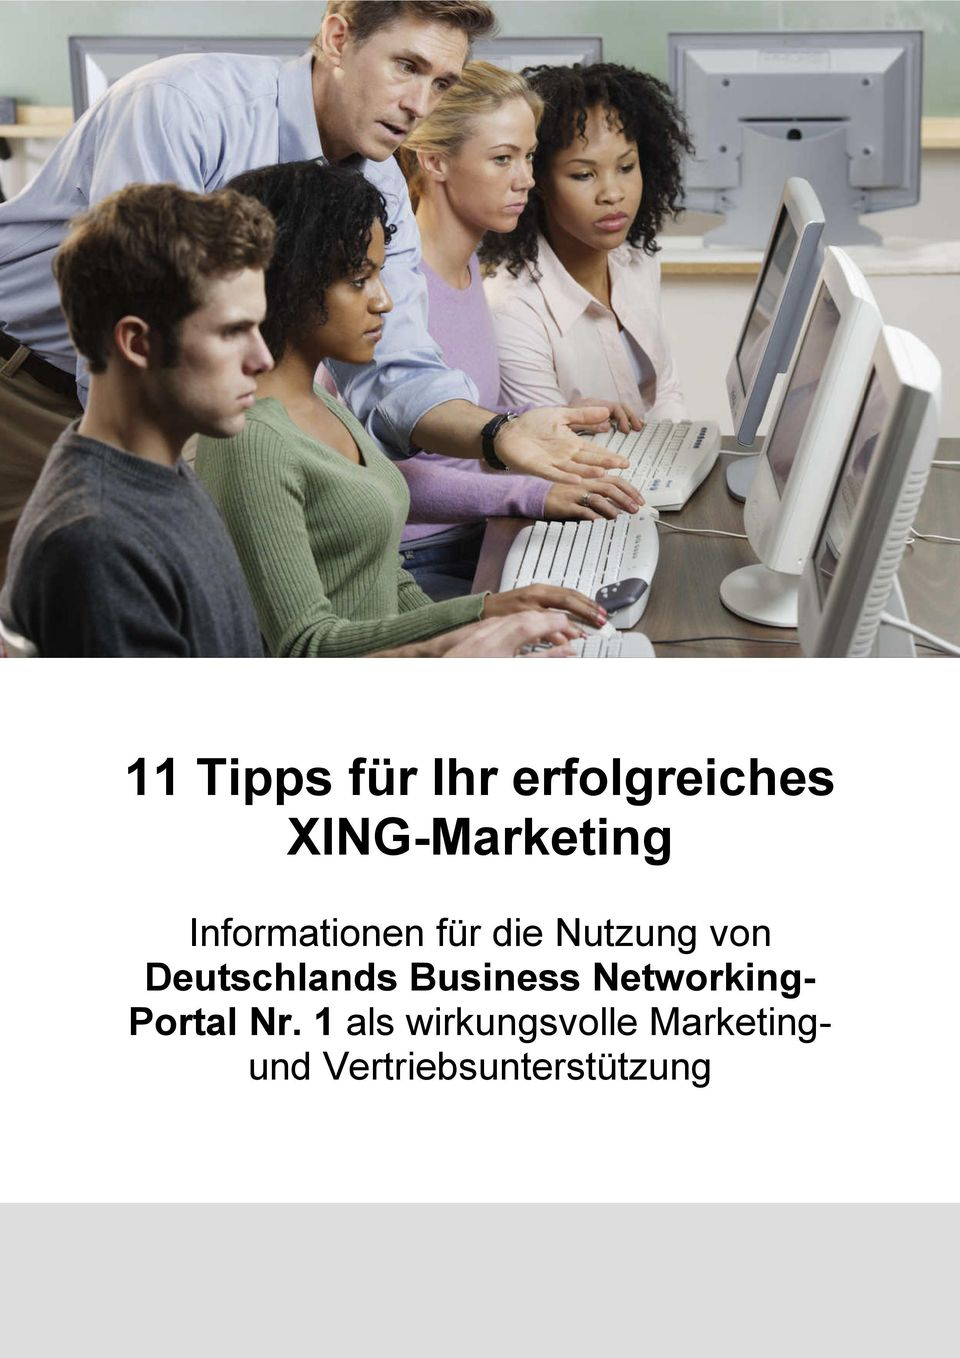 Business Networking- Portal Nr.